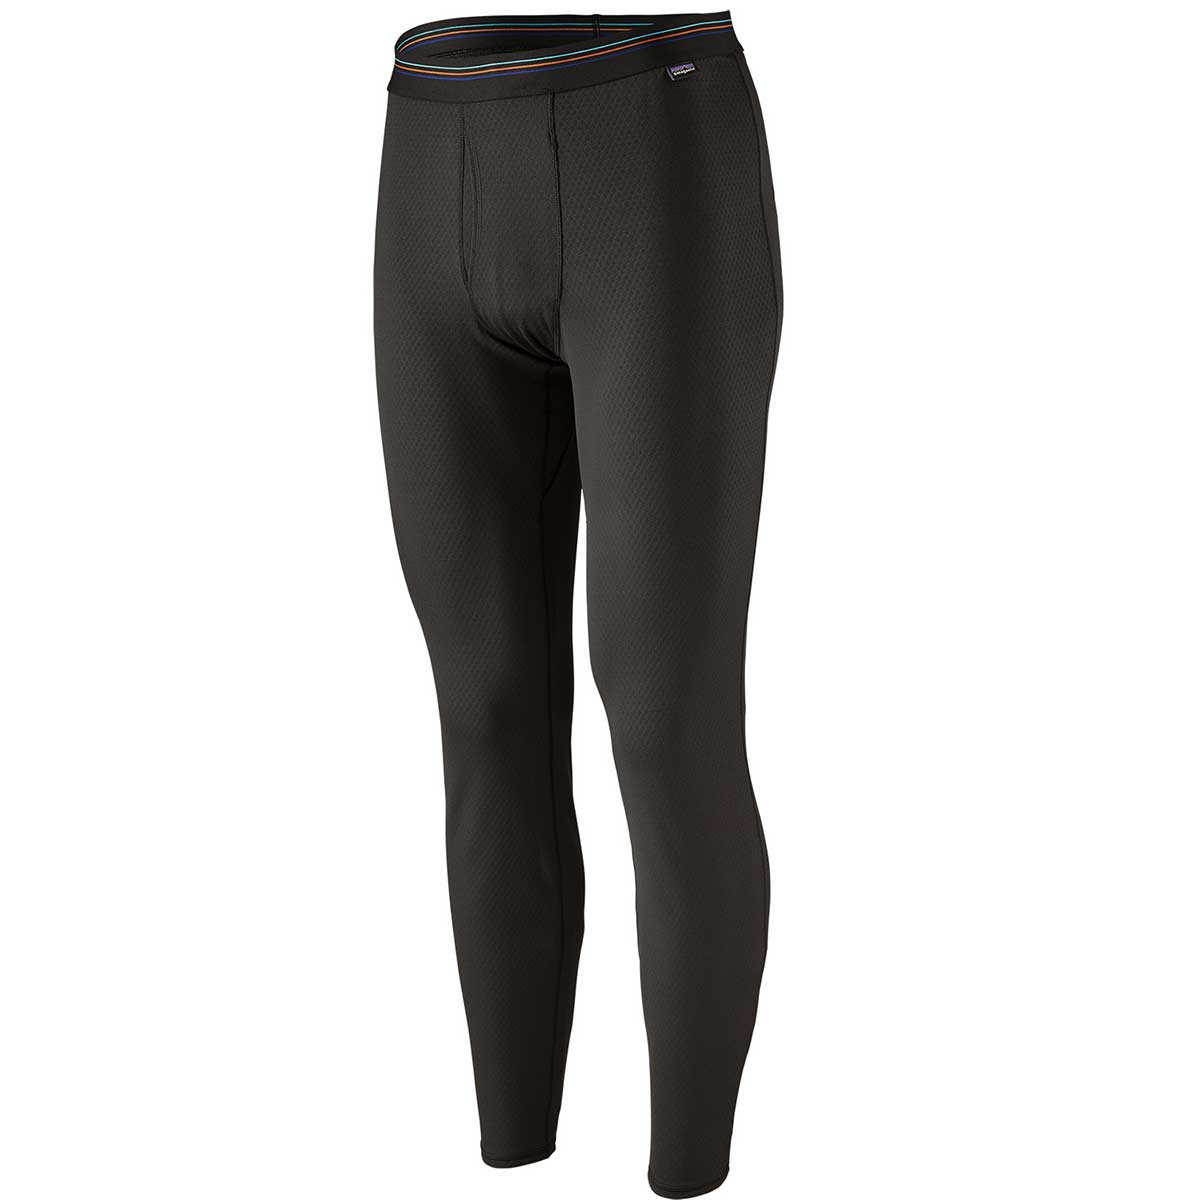 Patagonia men's Capilene Midweight Bottoms in Black front view